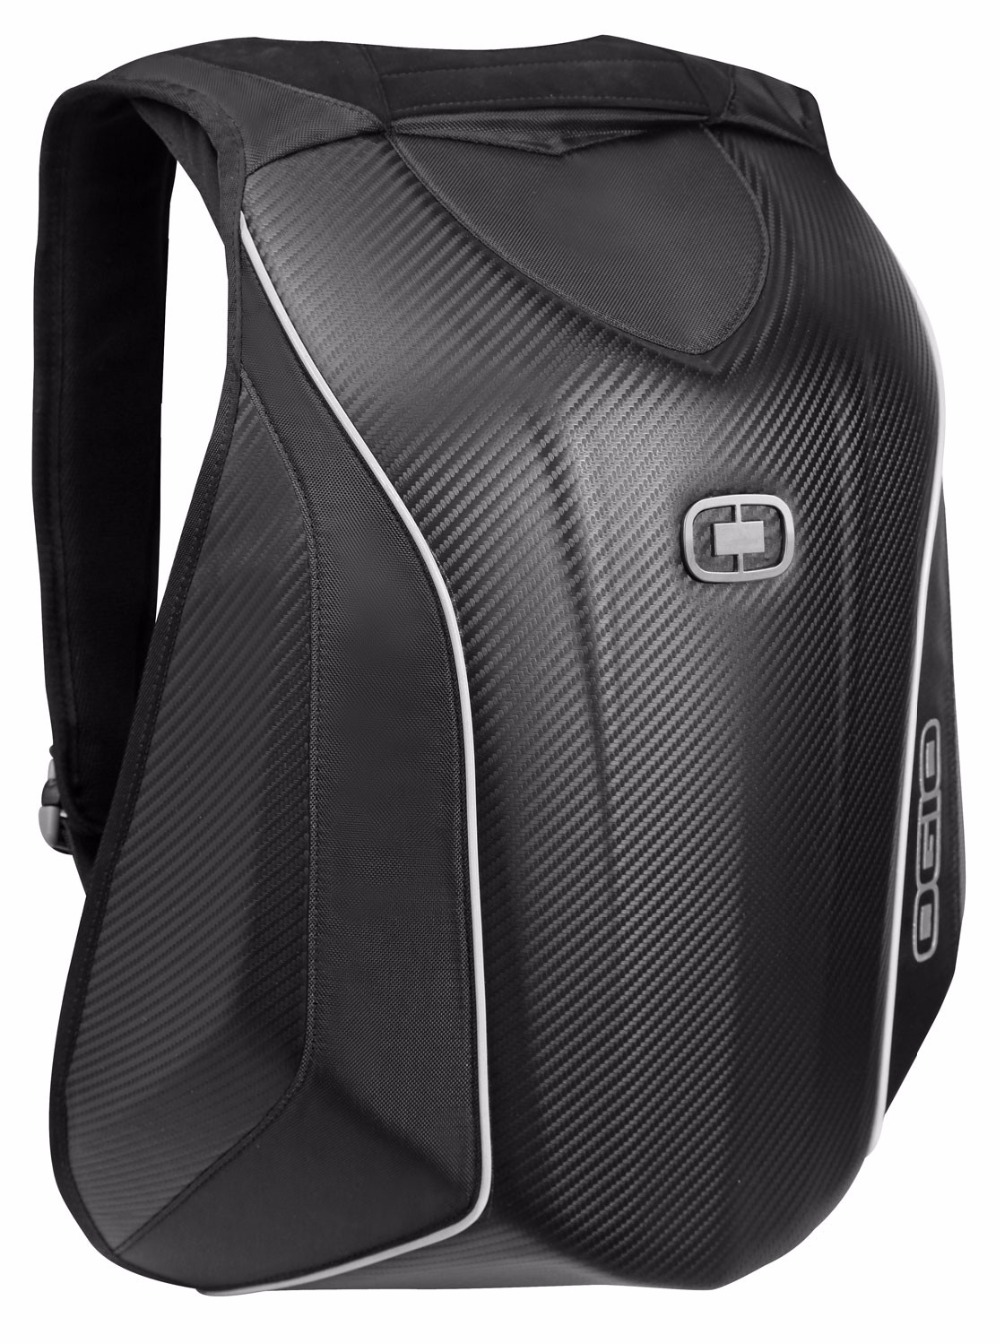 2016 OGIO Mach 5 carbon fiber mach 3 fashion backpack Motorcycle motocross riding racing bag backpack cucyma motorcycle bag waterproof motorcycle backpack carbon fiber motocross racing riding helmet bag motorbike knight backpack